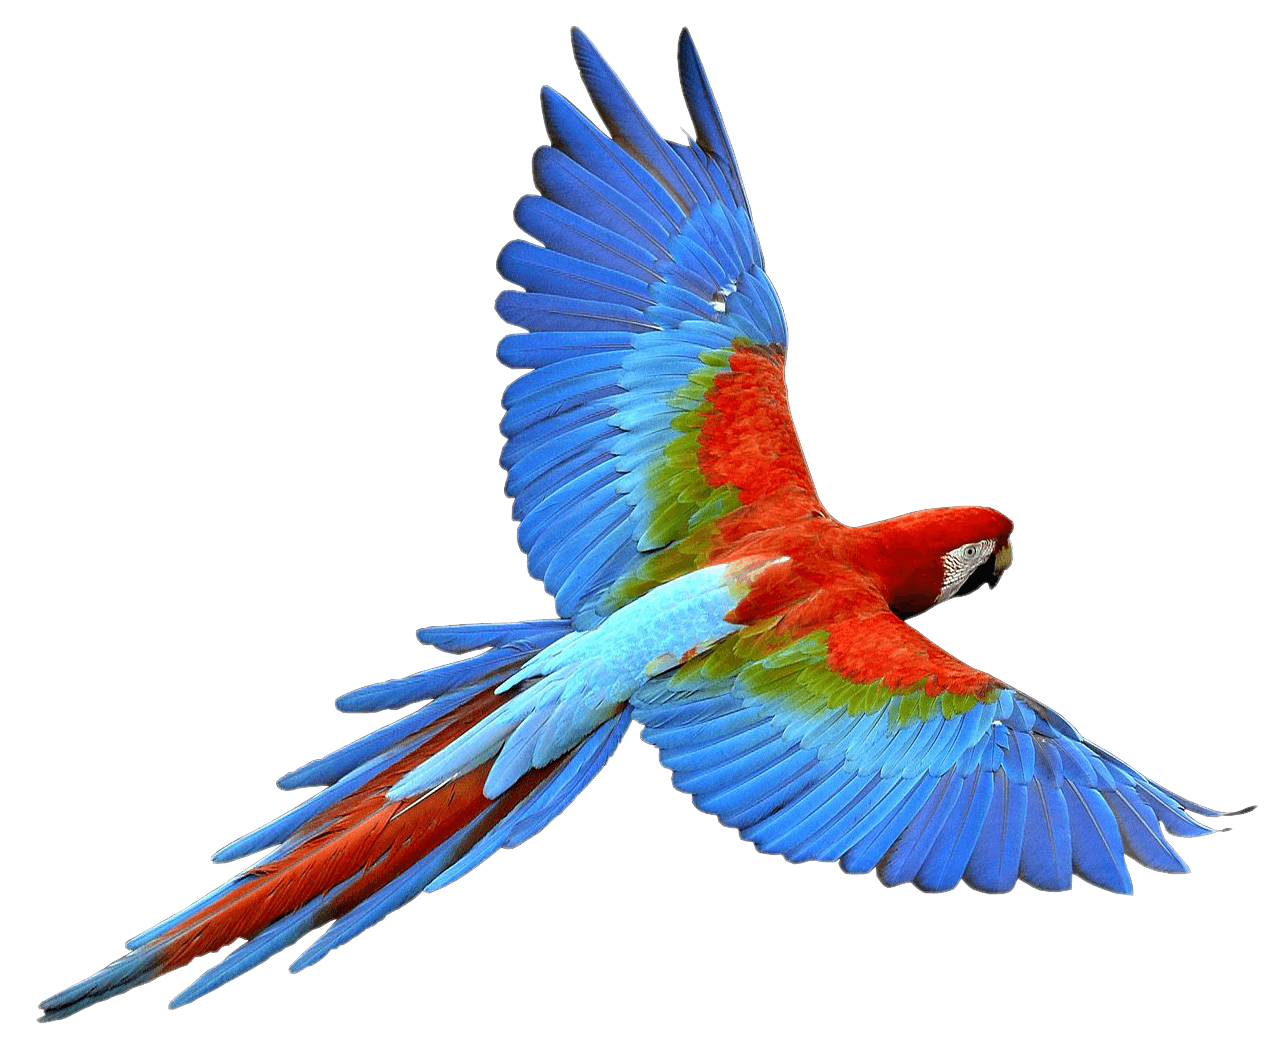 Parrot clipart tail. Flying red blue transparent